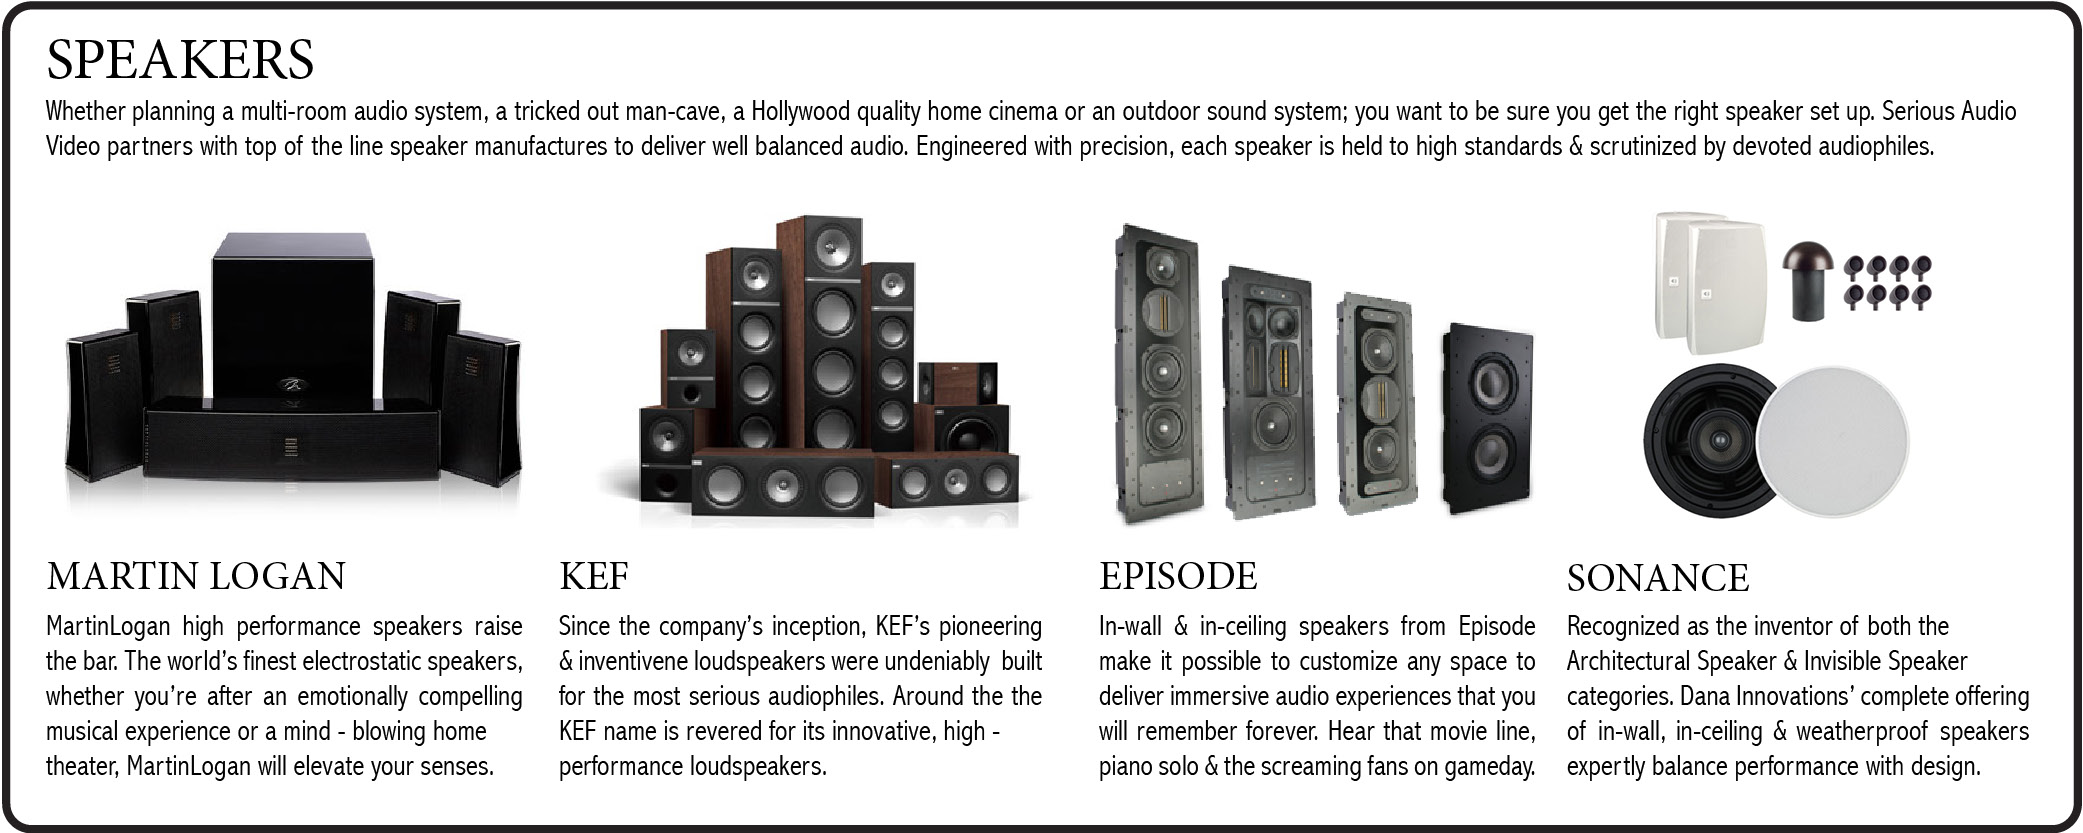 Martinlogan-kef-episode-sonance-speakers-multi-room-audio-home-theater